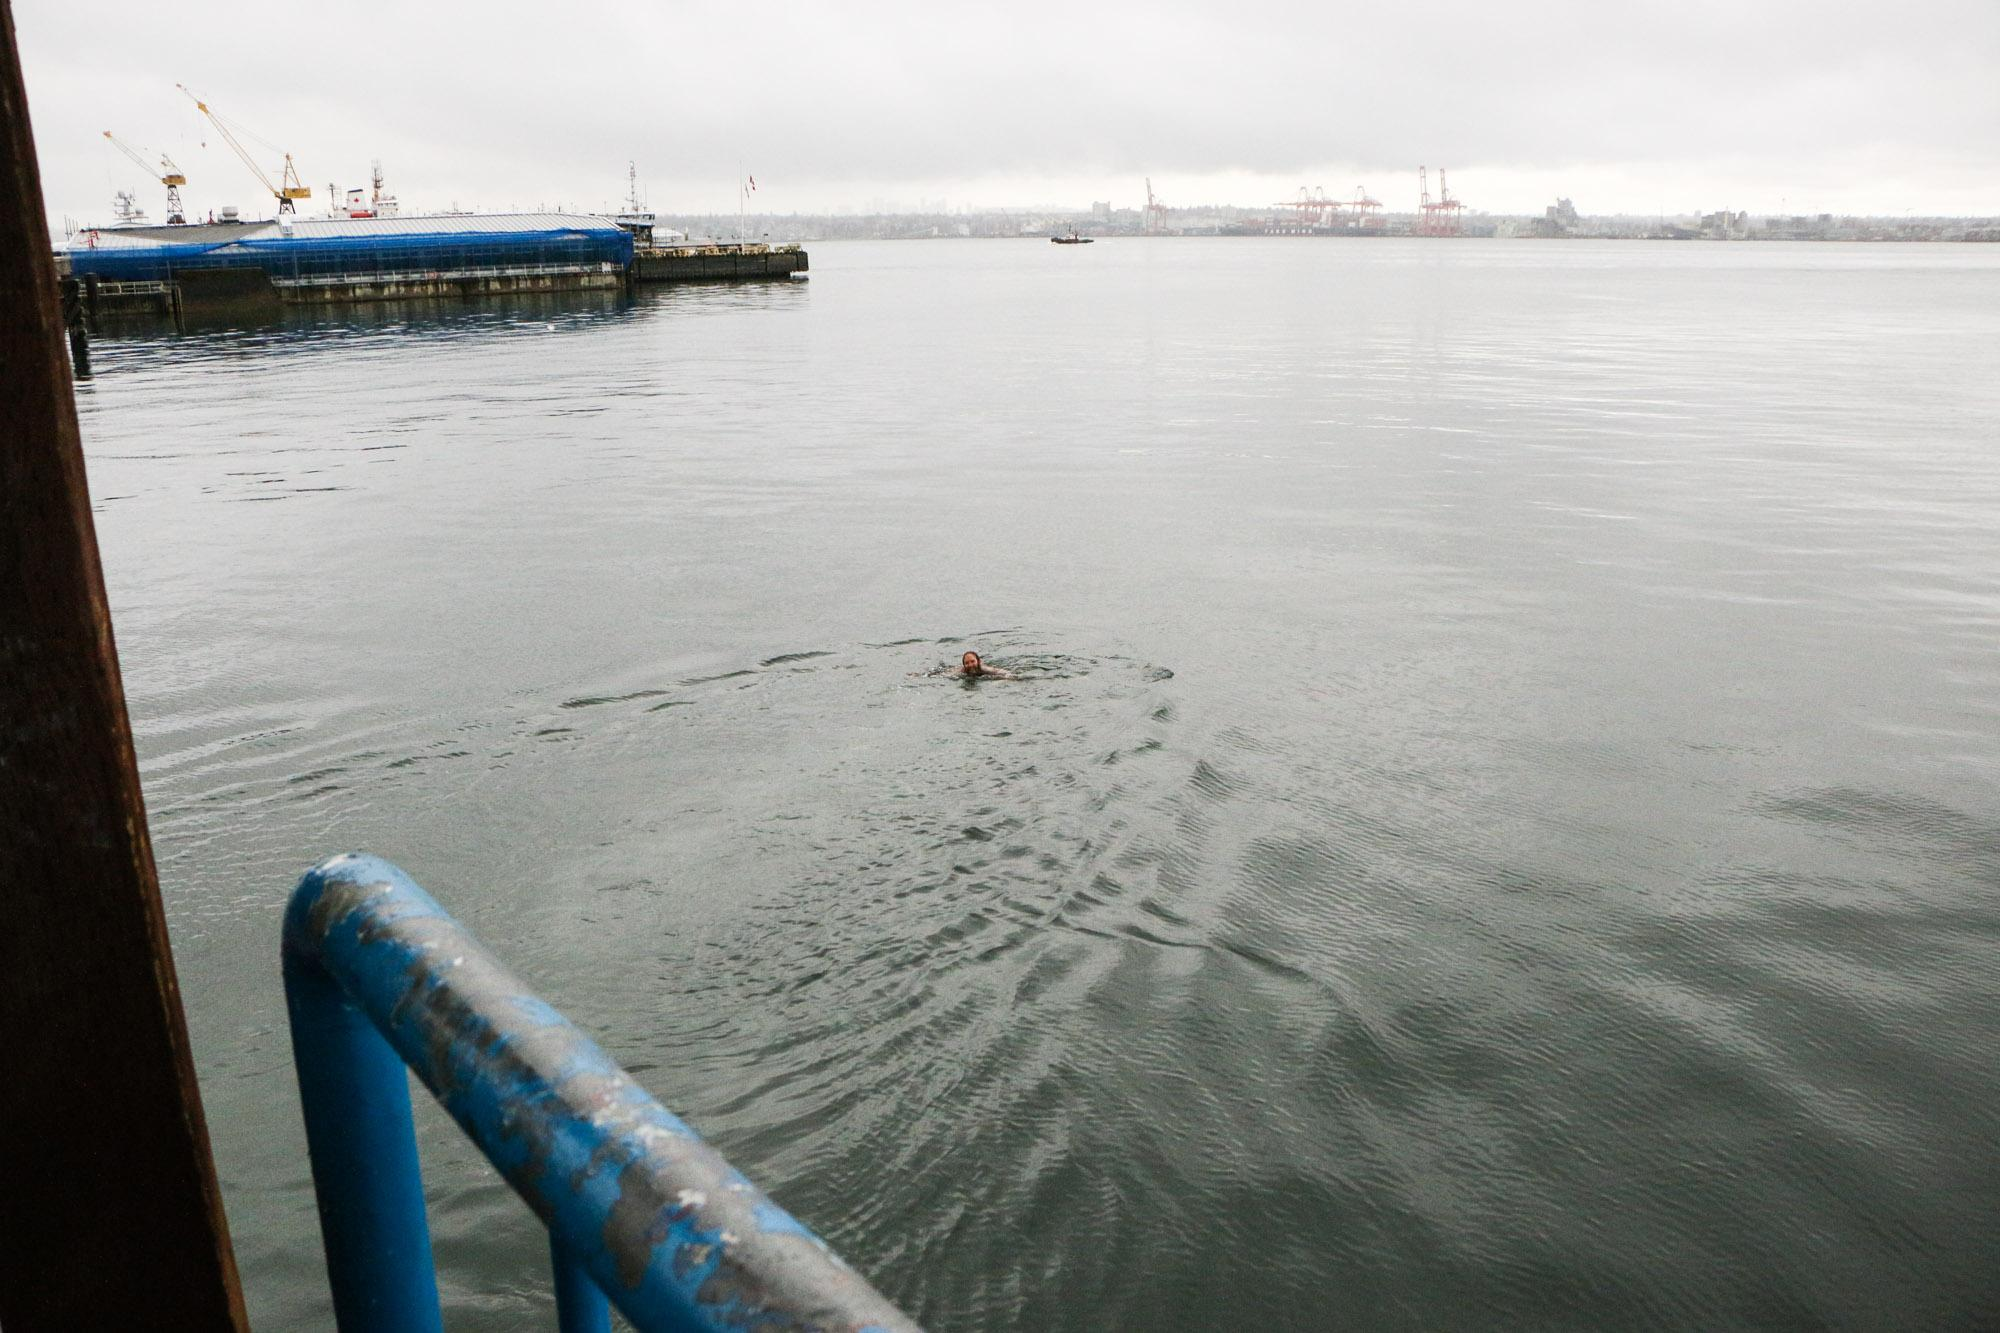 By the time he swam out, the mug had already made it pretty far into Burrard Inlet.